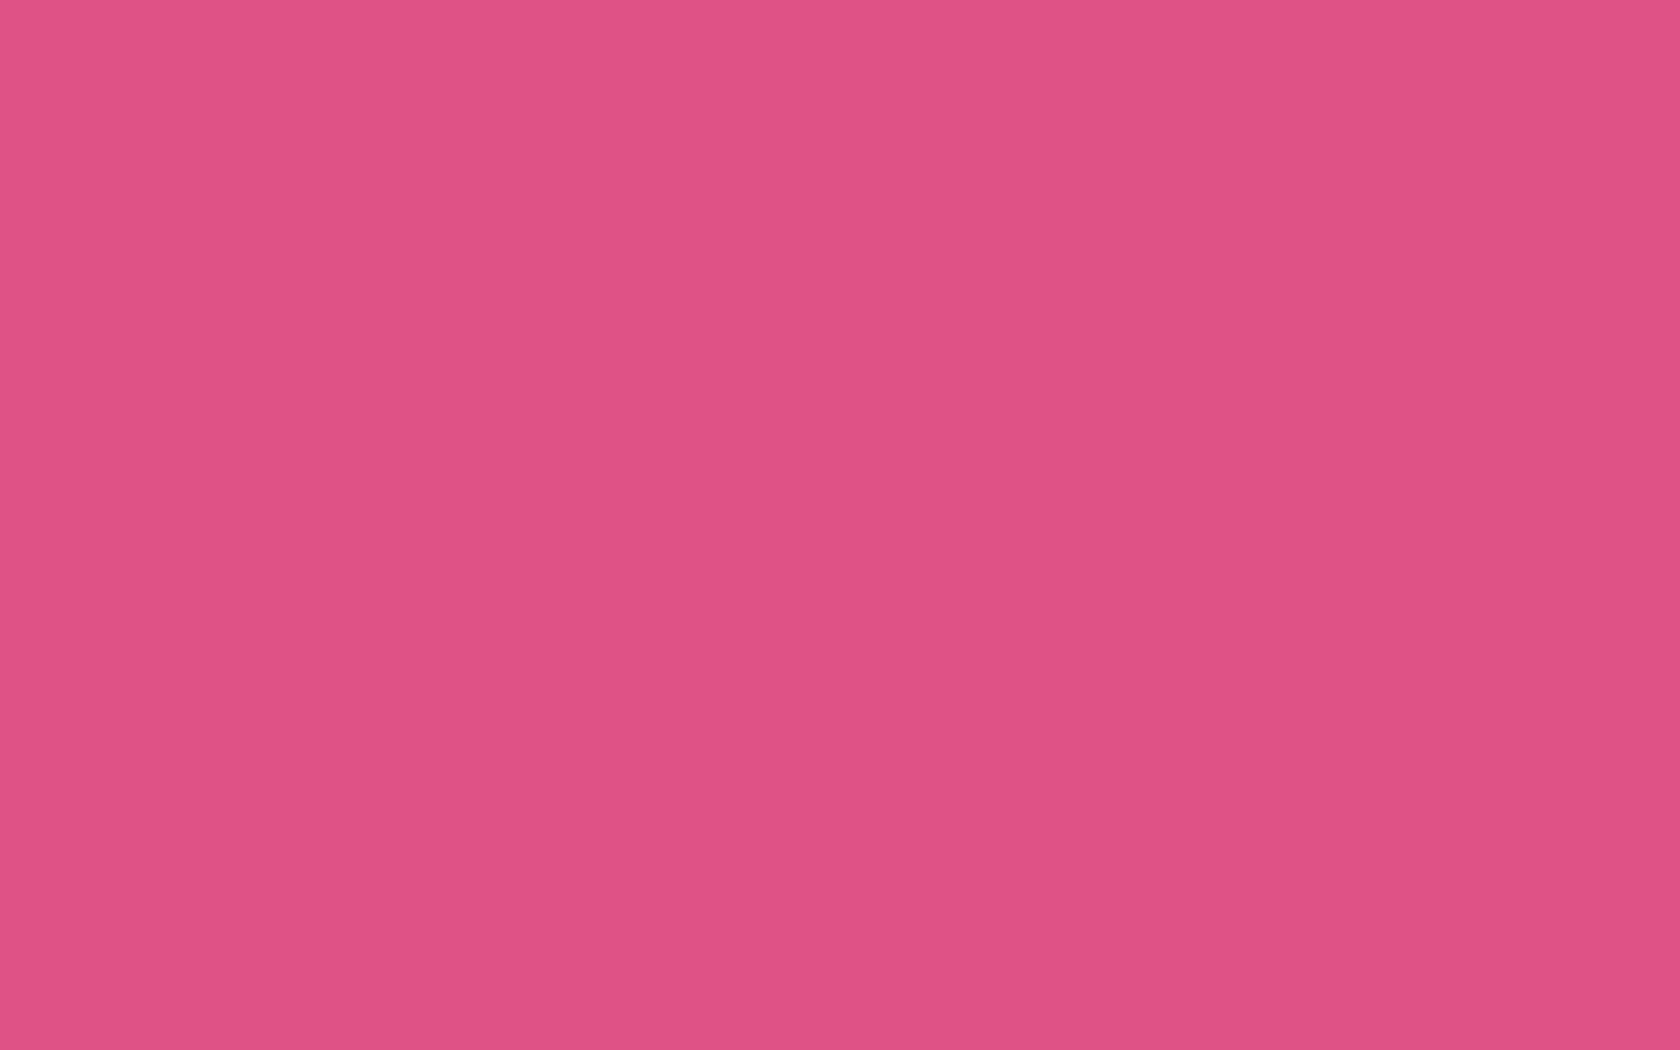 1680x1050 Fandango Pink Solid Color Background